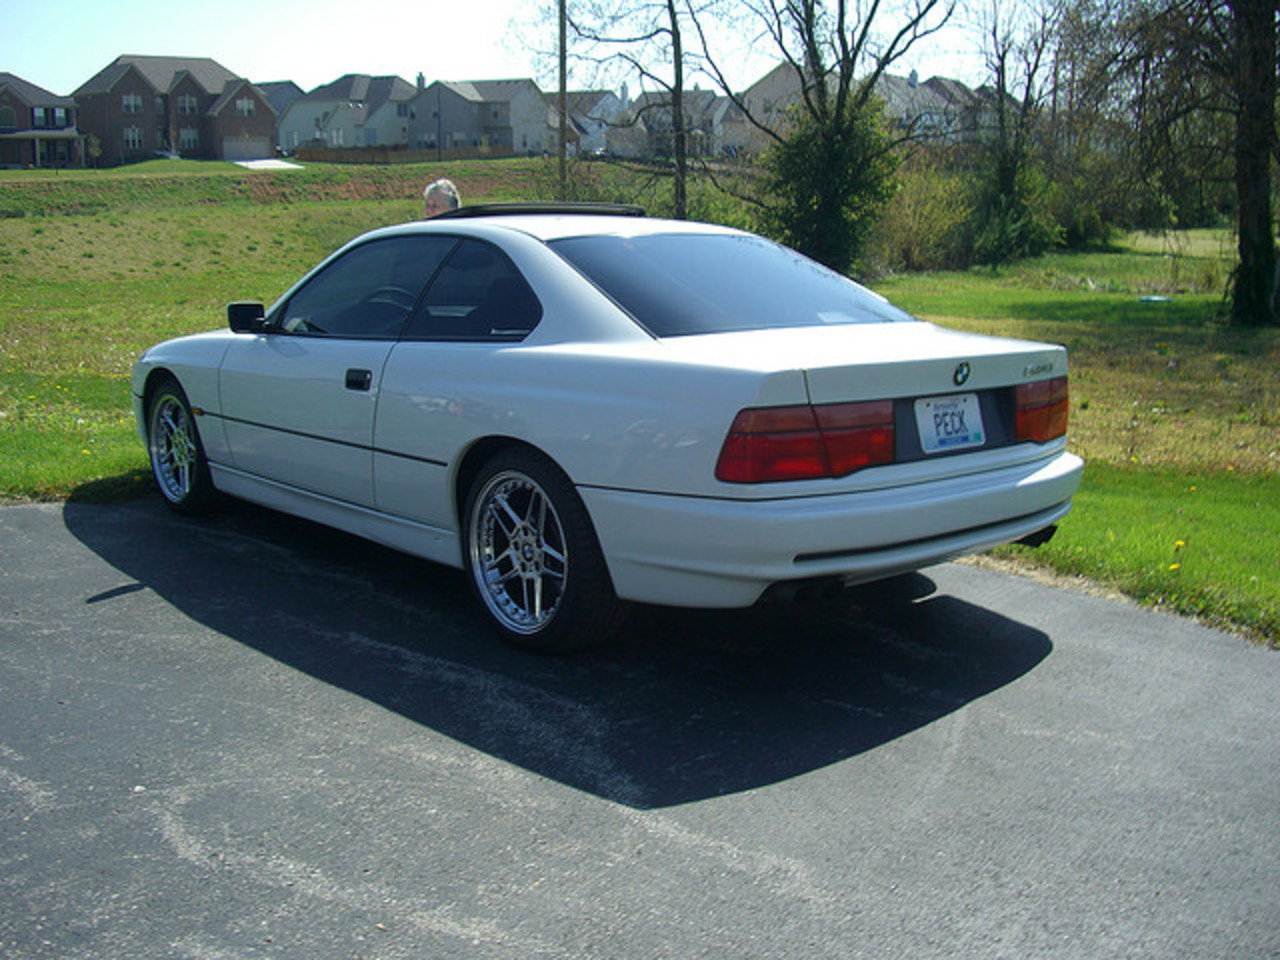 sweet bmw 840i | Flickr - Photo Sharing!